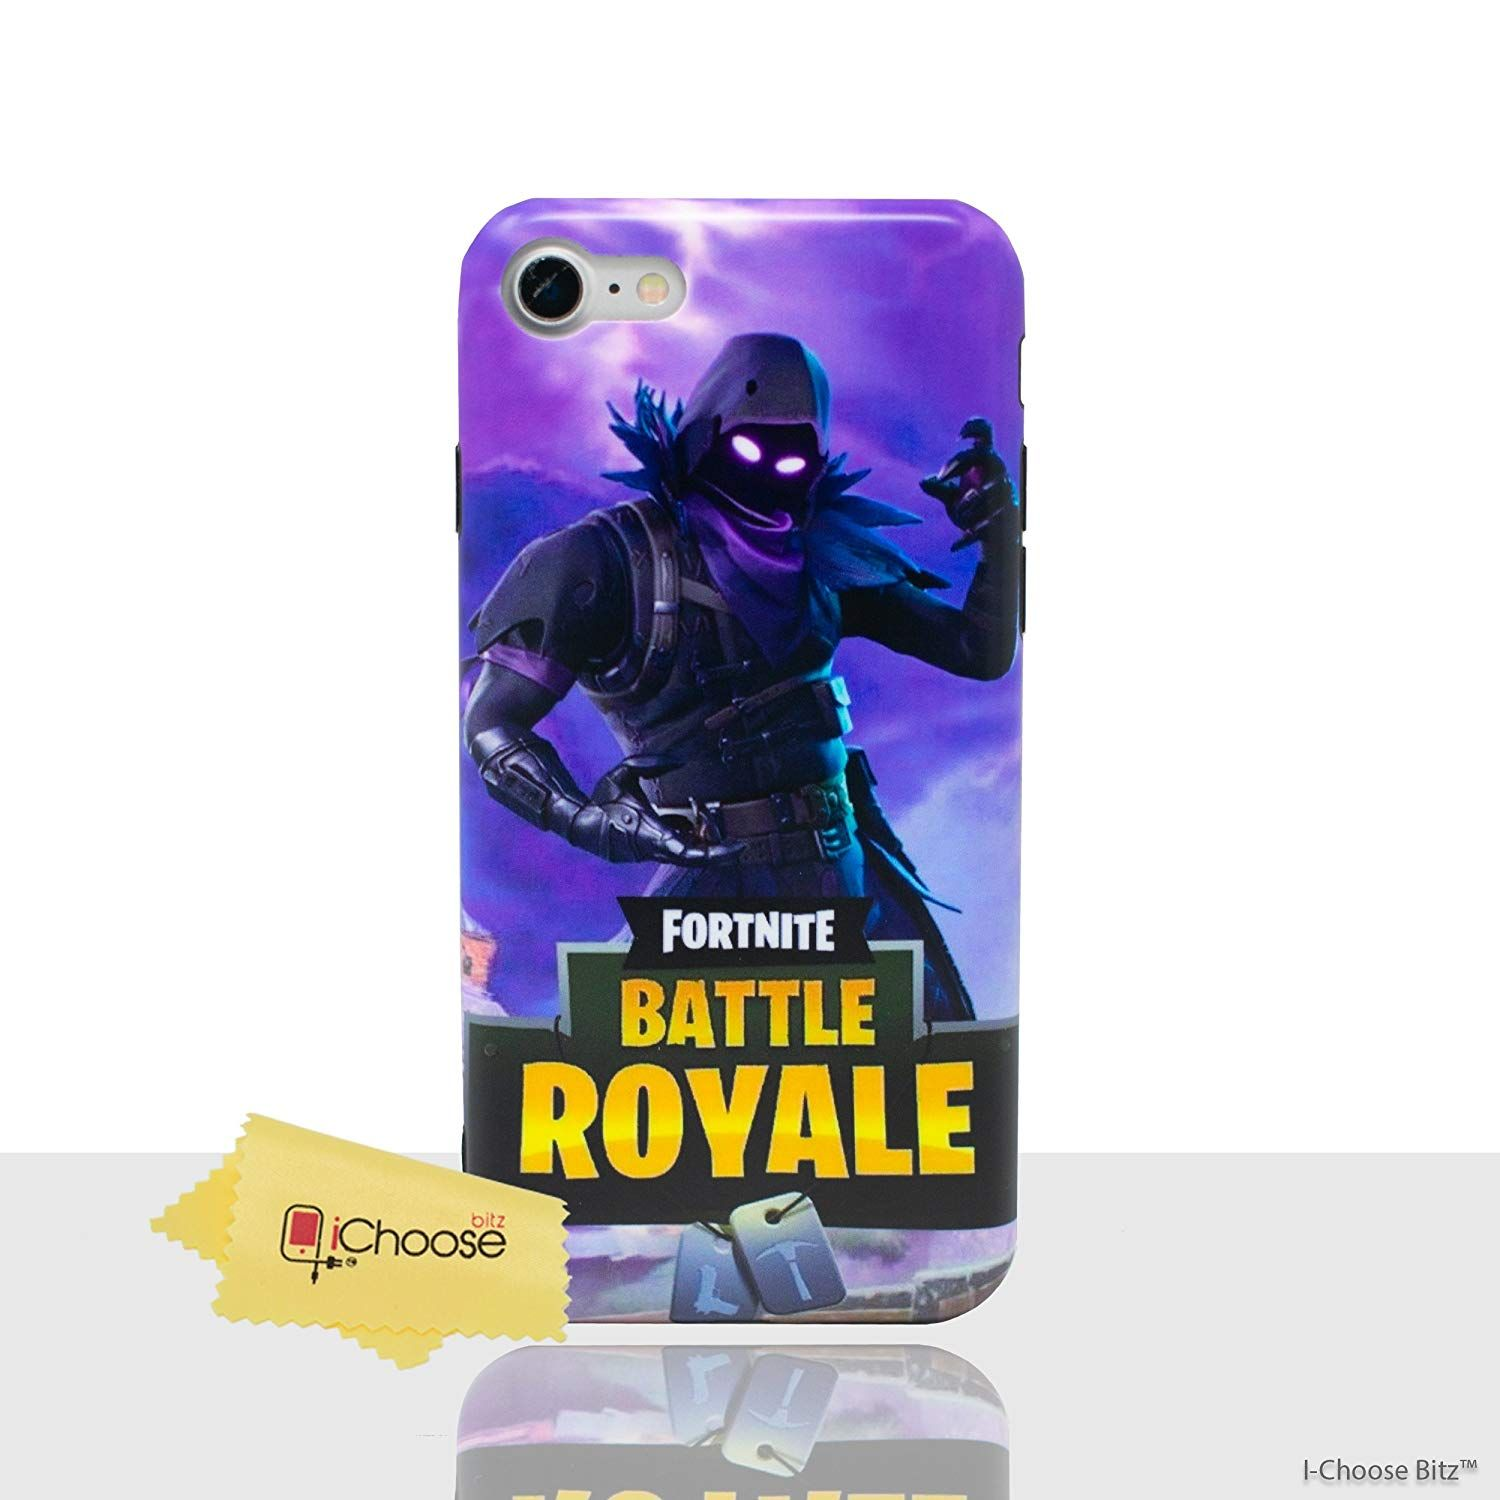 Can You Get Fortnite On Iphone 6 Fortnite Battle Royale Imd Case In Mold Decoration Technology Available For Apple Iphone 6s 6 Fortnite Iphone Phonecase